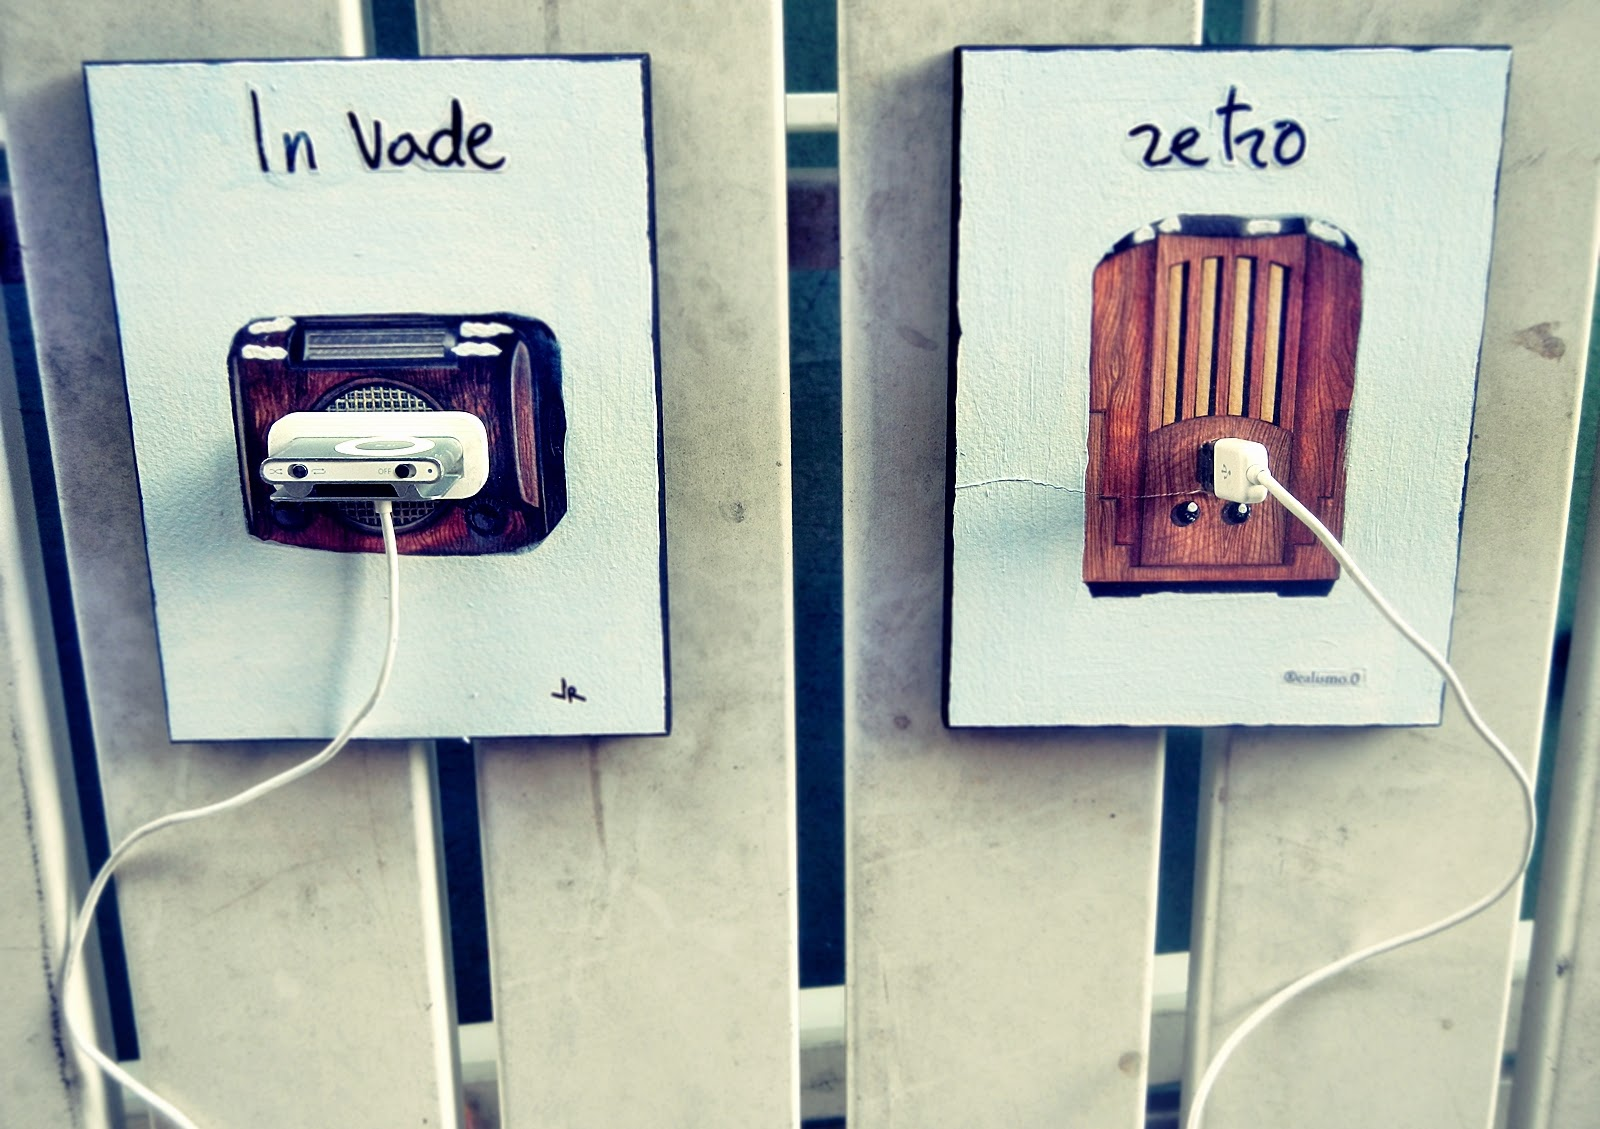 In Vade Retro